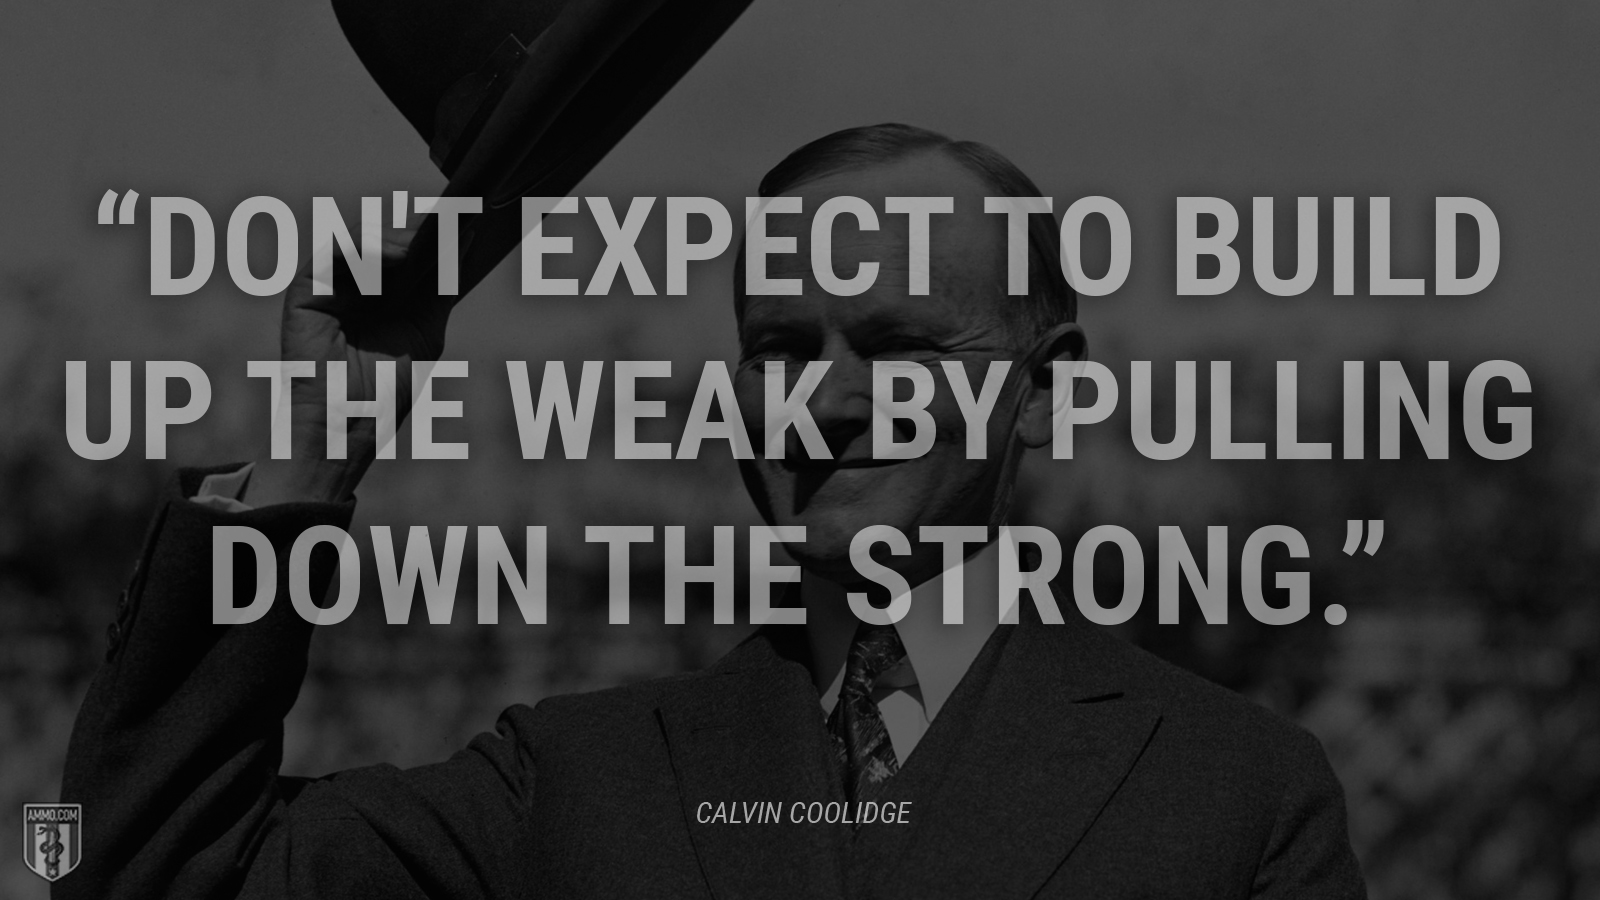 """Don't expect to build up the weak by pulling down the strong."" - Calvin Coolidge"